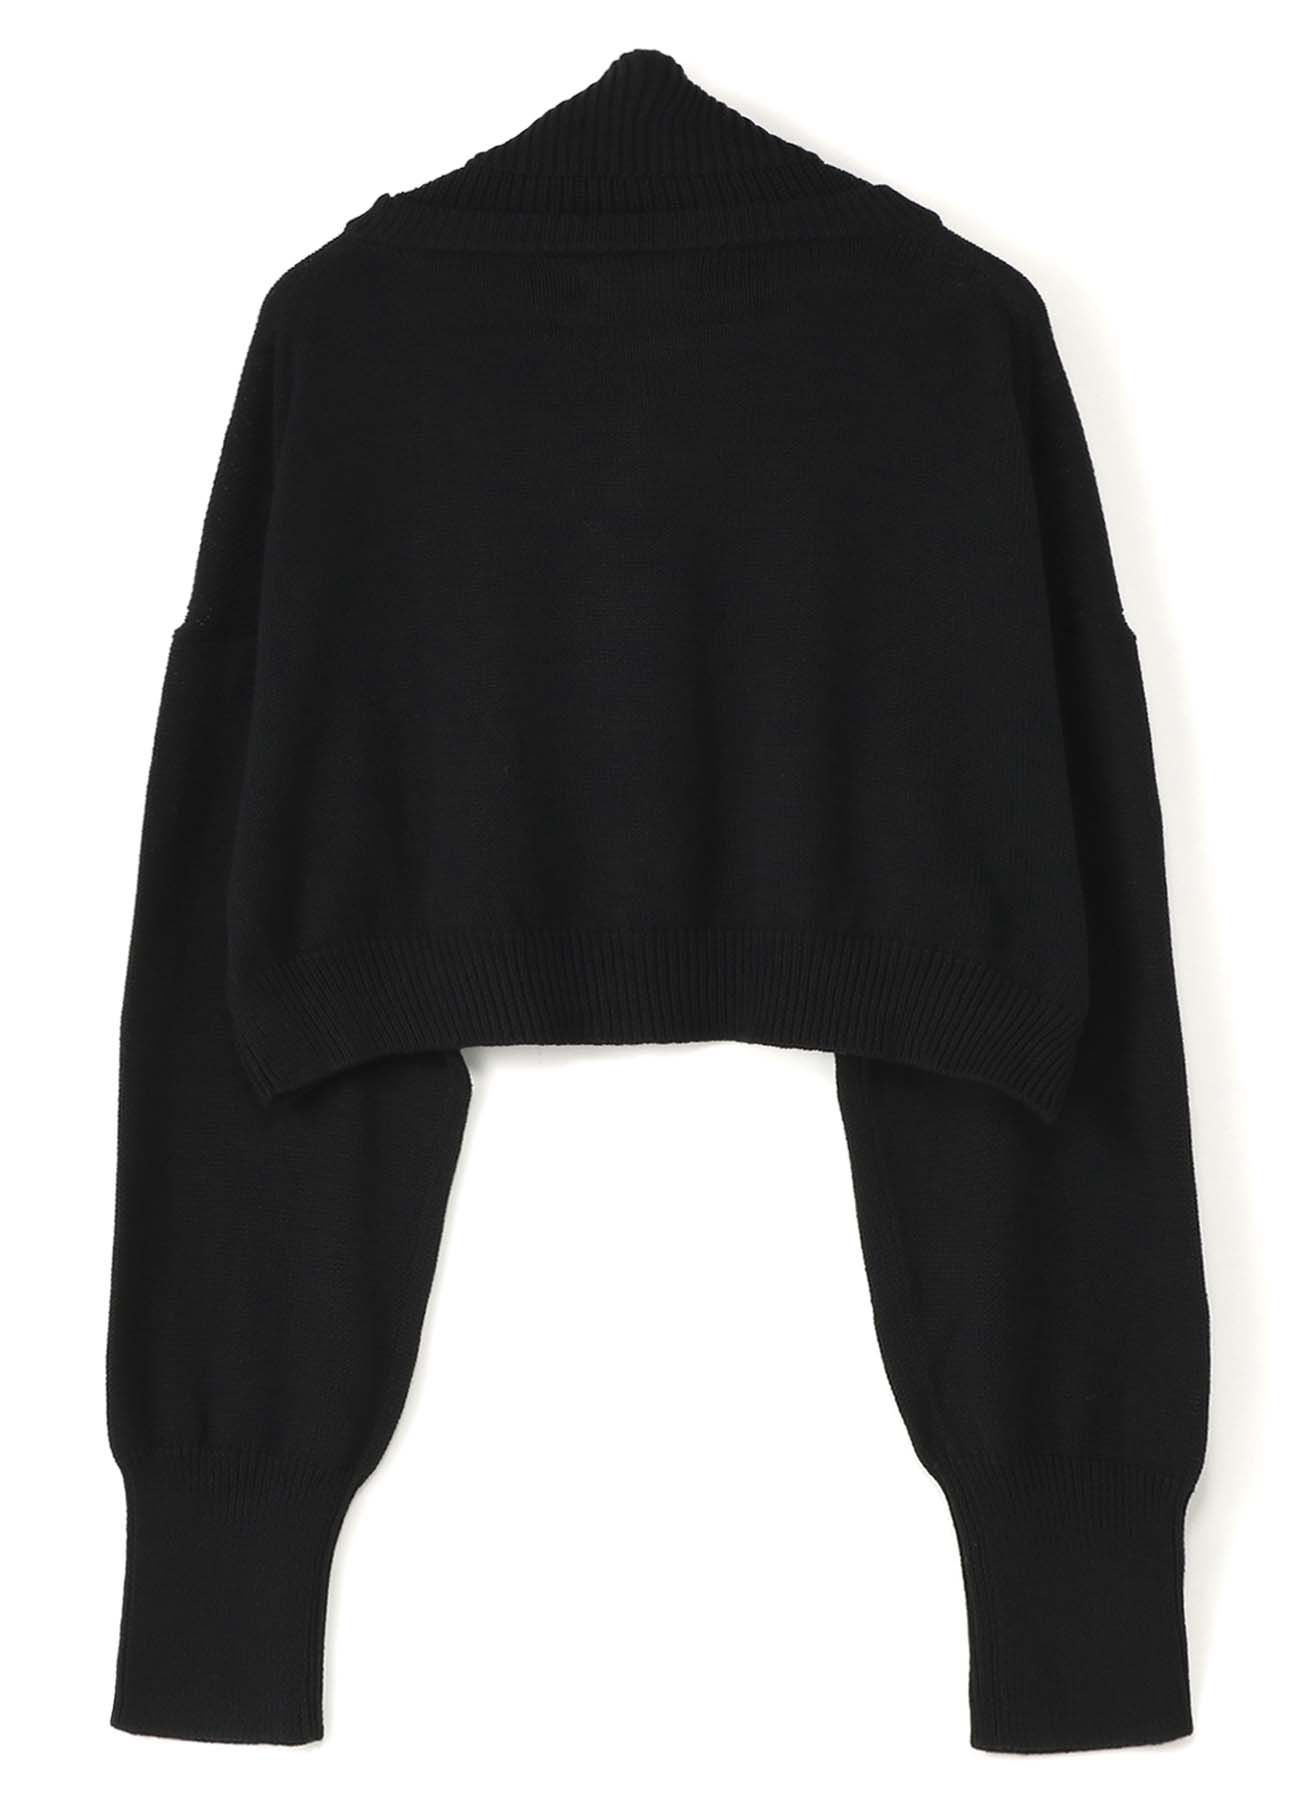 COTTON KNIT DOUBLE COLLAR PULLOVER